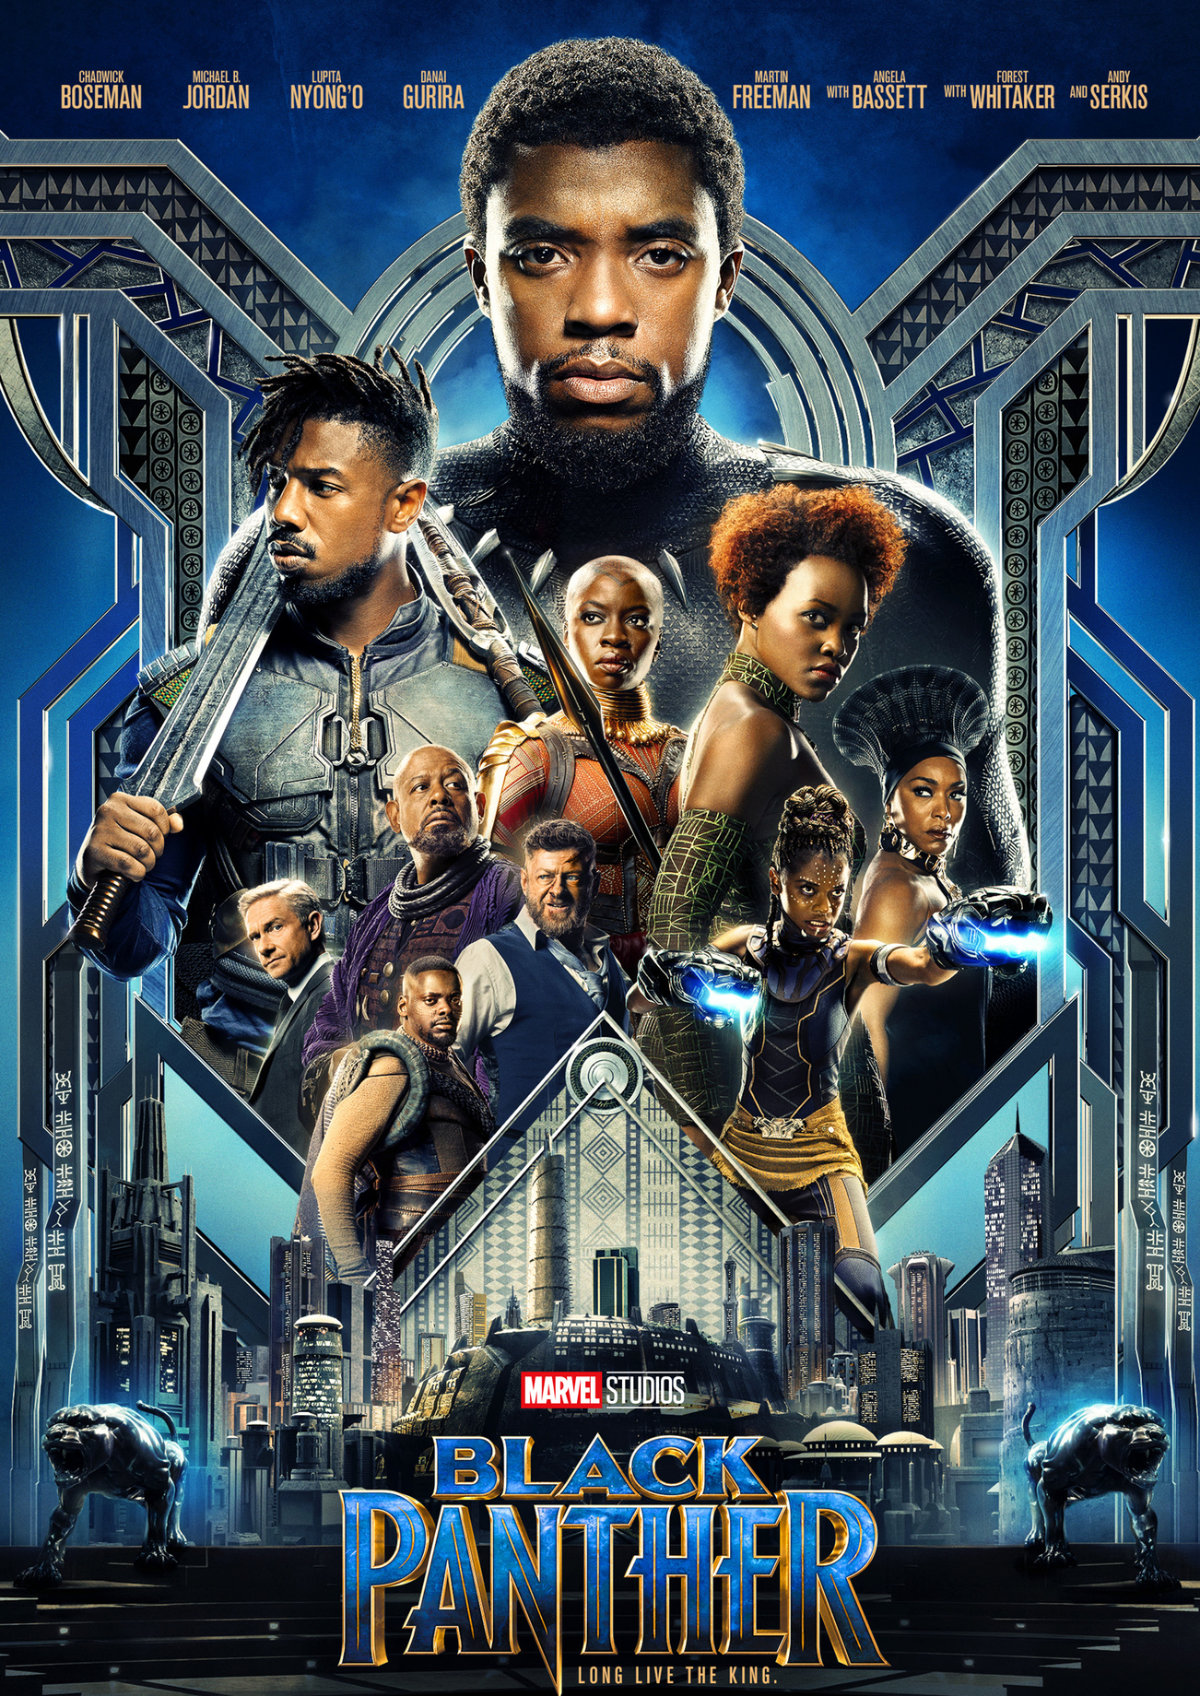 'Black Panther' movie poster